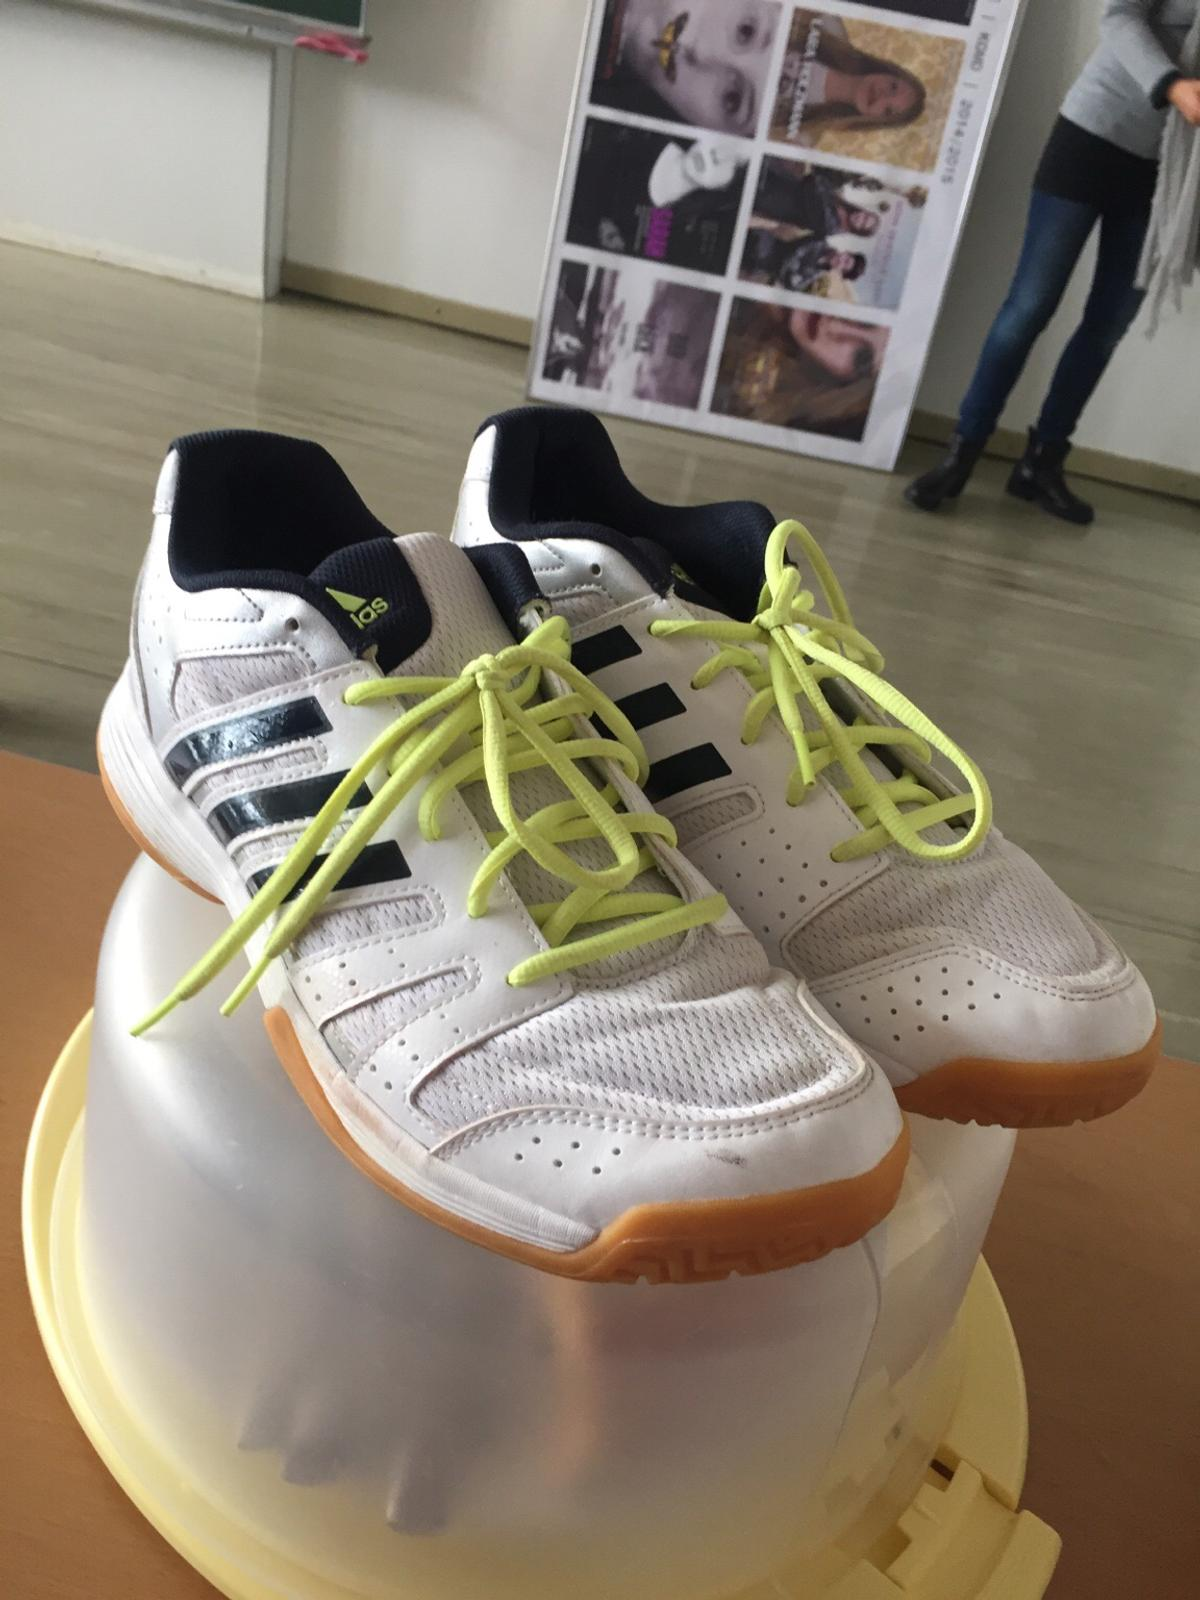 sneakers for cheap 100% authentic beauty Adidas Hallenschuhe 43 in 8141 Oberpremstätten for €8.00 for ...